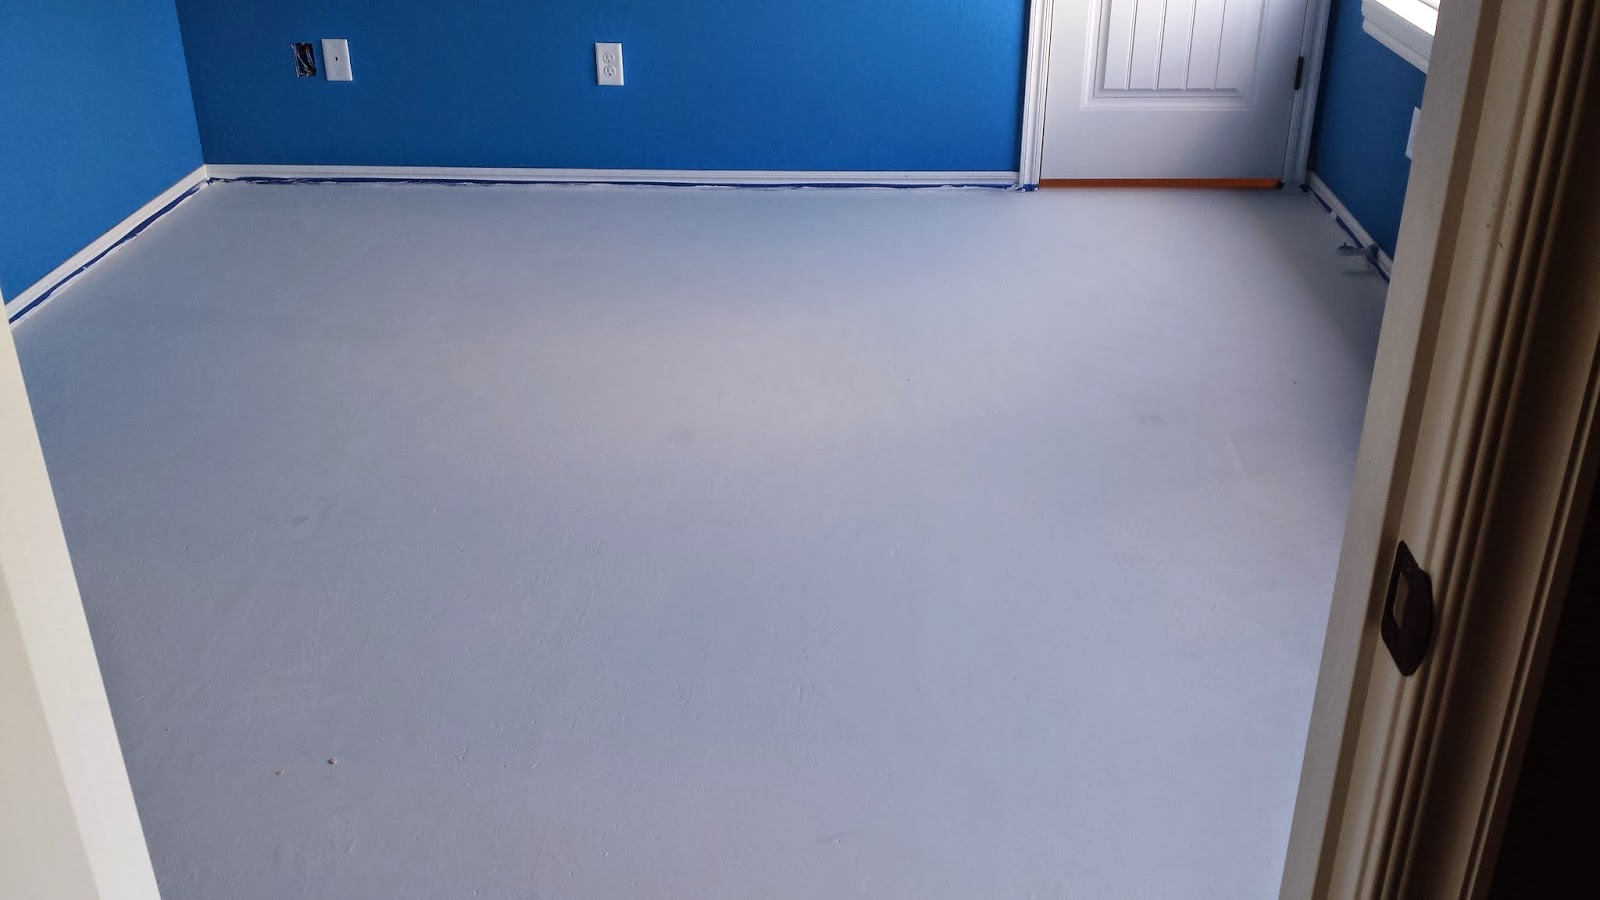 Painted Plywood Subfloor